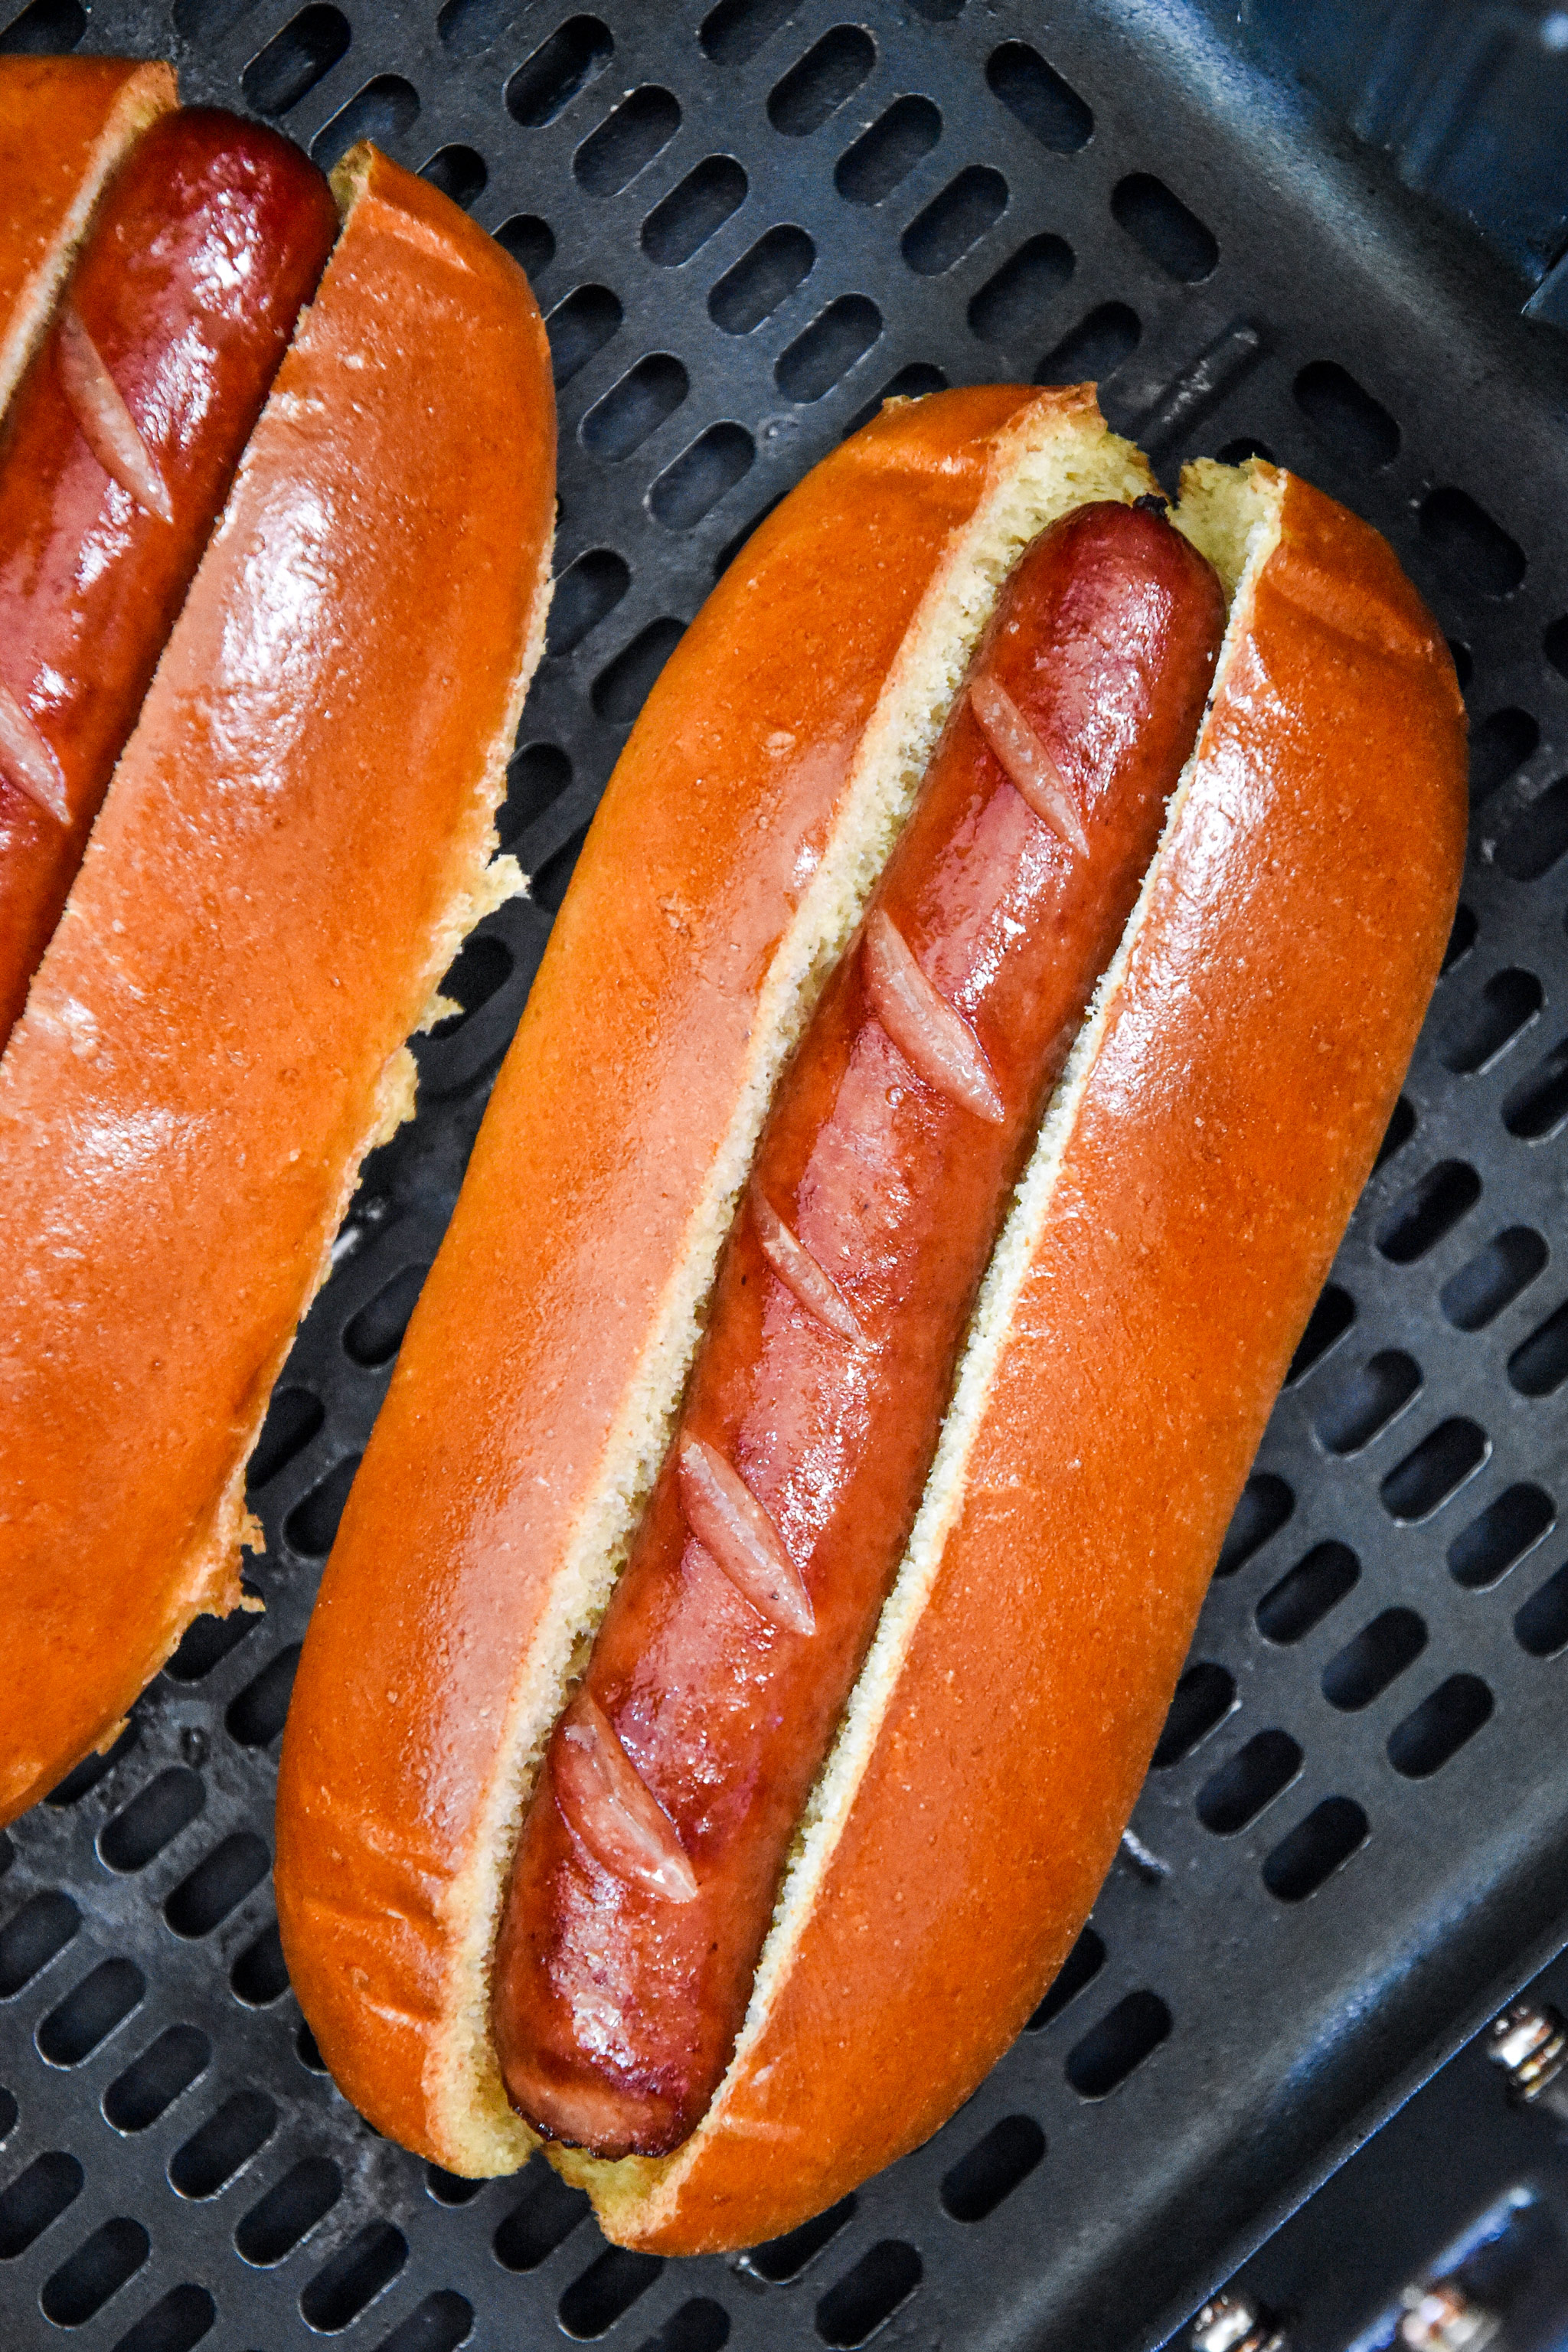 toasted buns and cooked hot dogs in the air fryer basket.